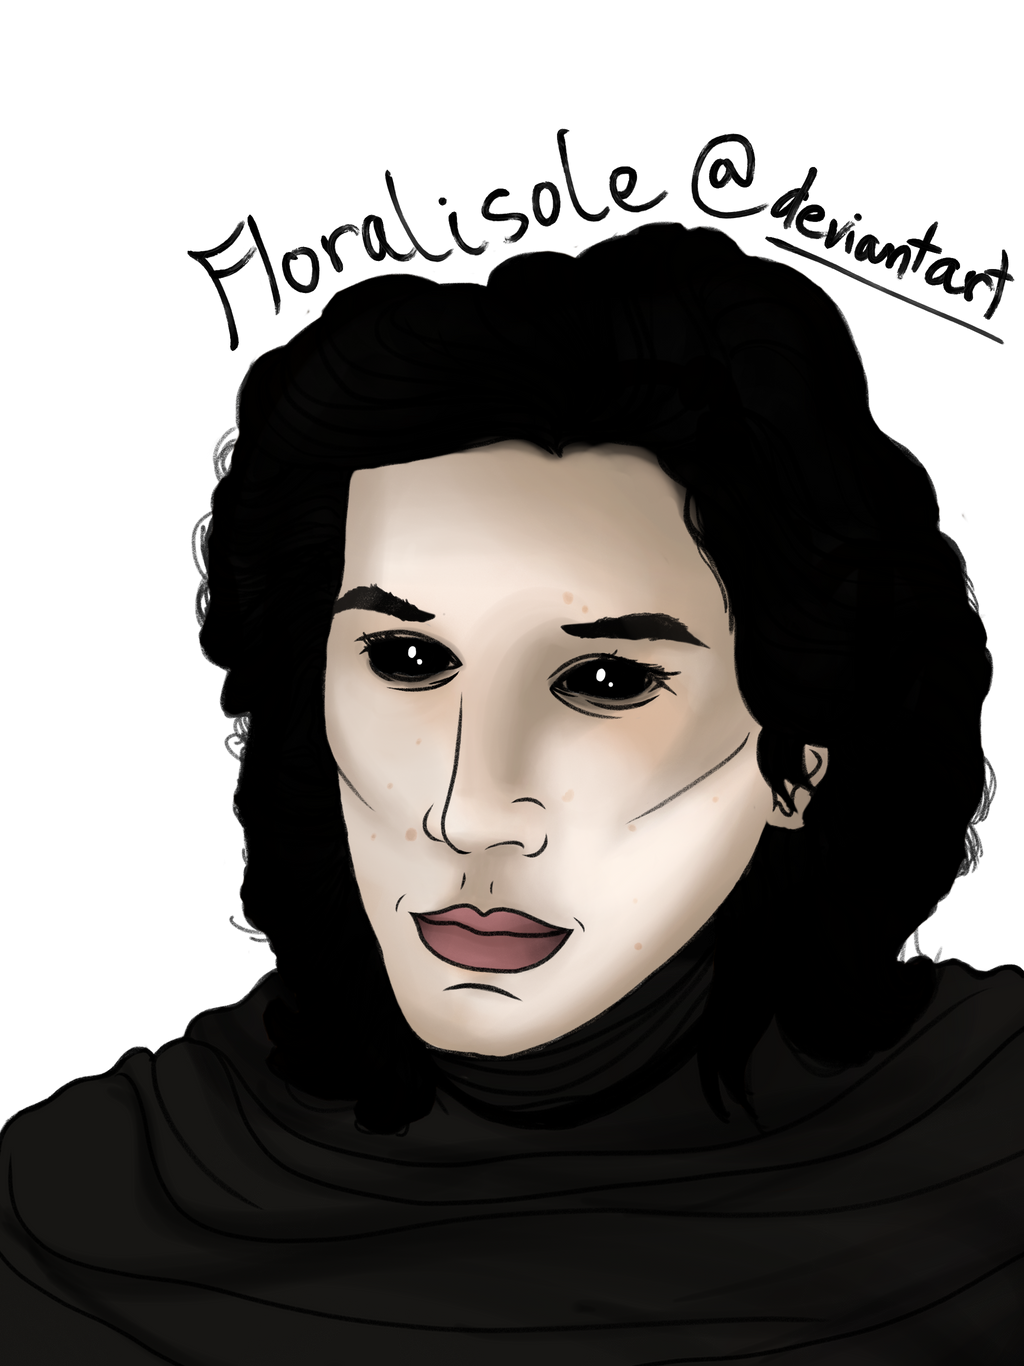 Kylo Ren Adobe Sketch Drawing Black Hair And Eyes By Floralisole On Deviantart